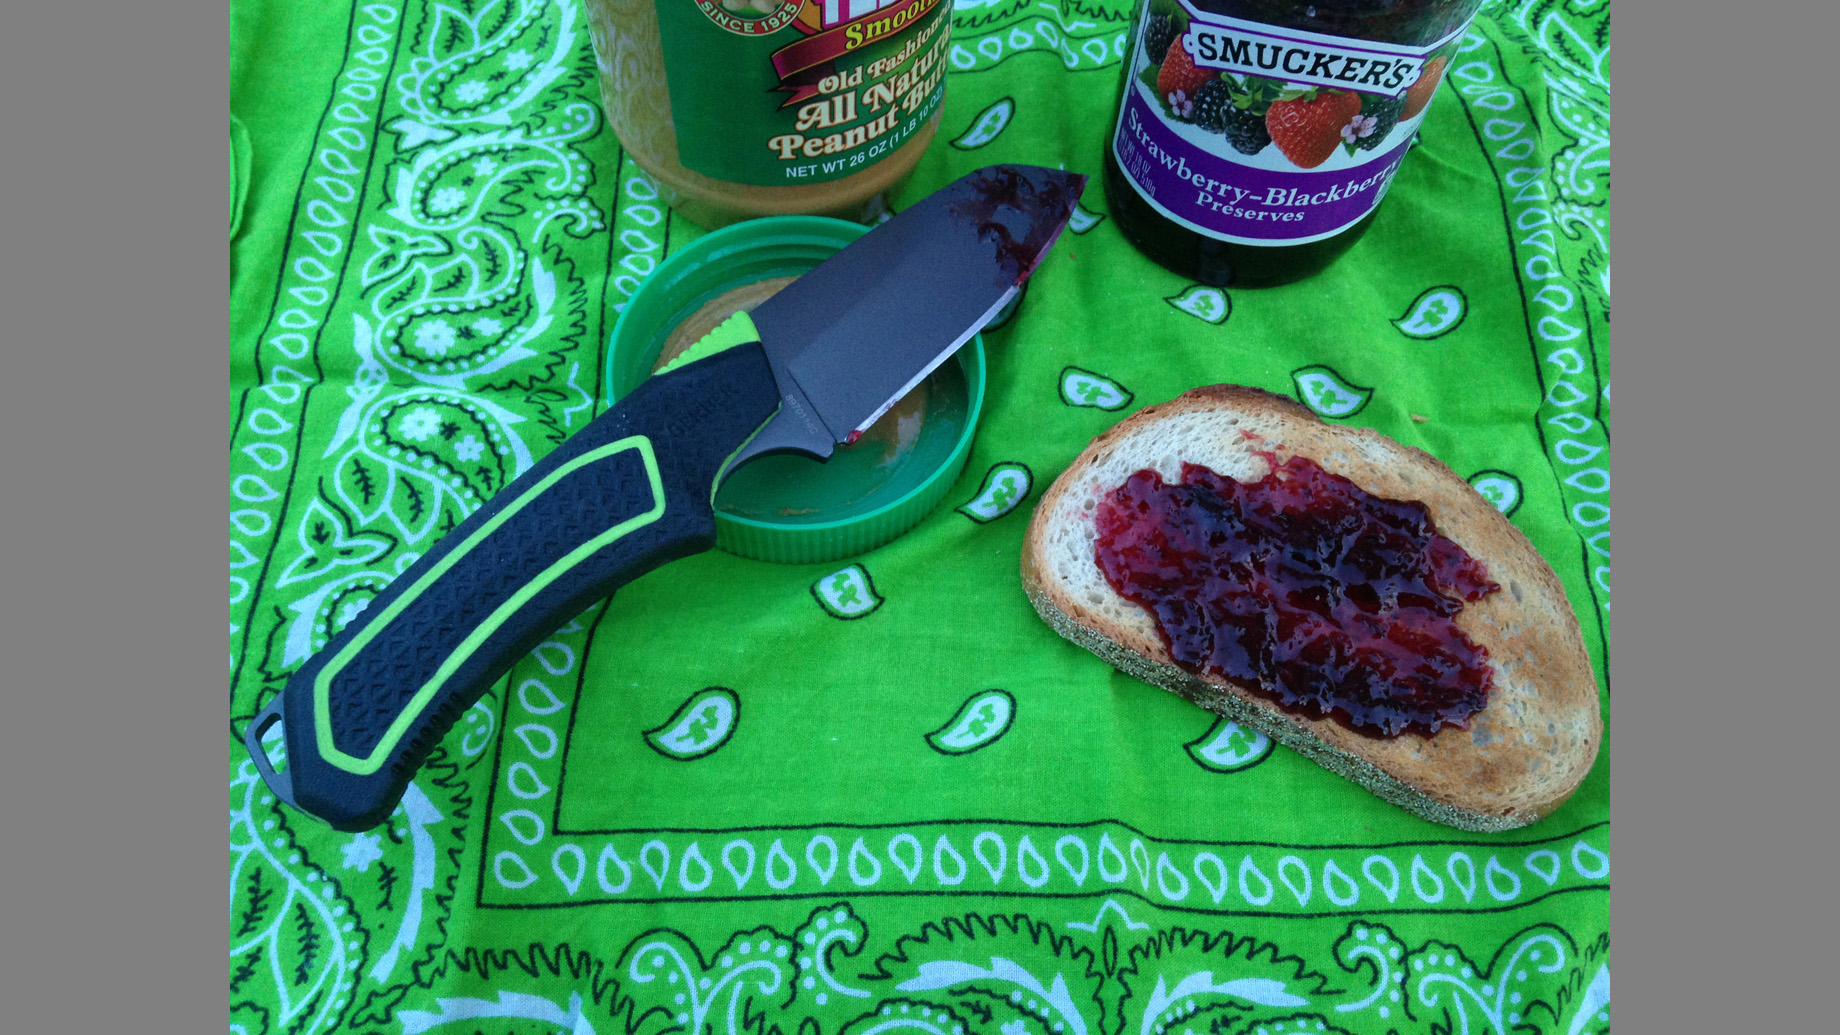 Gerber Camp Kitchen Knife Review